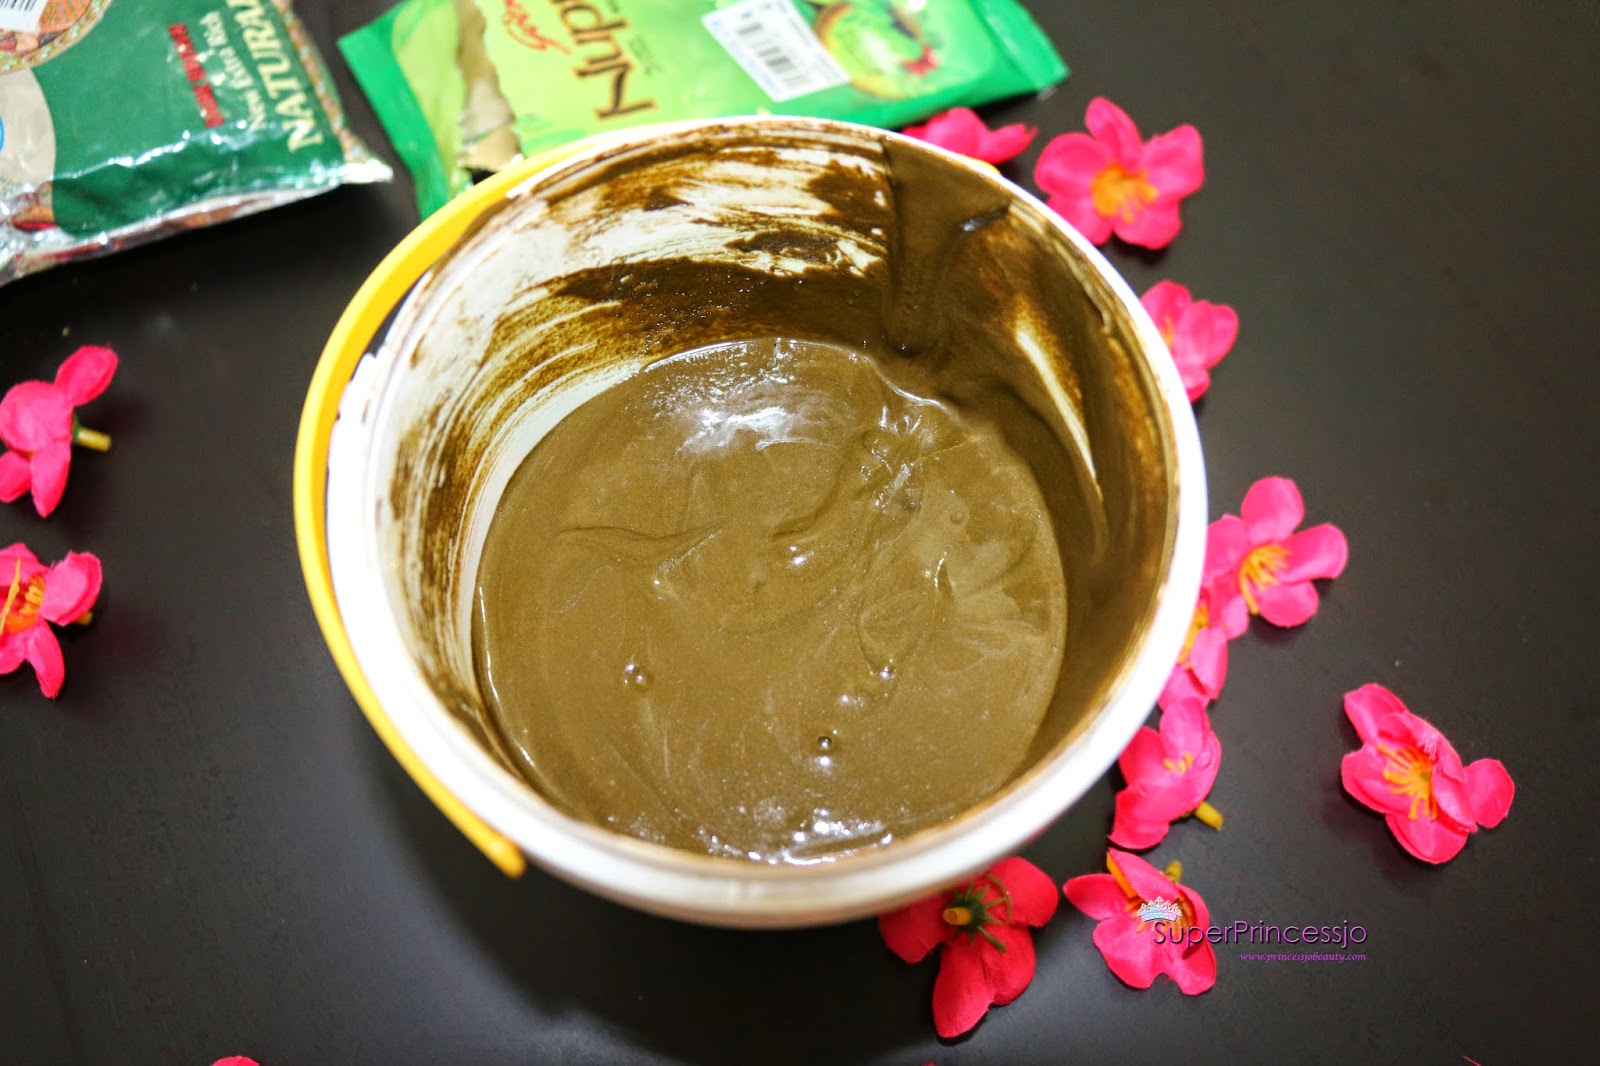 How to hair oil hair after henna use video HERE